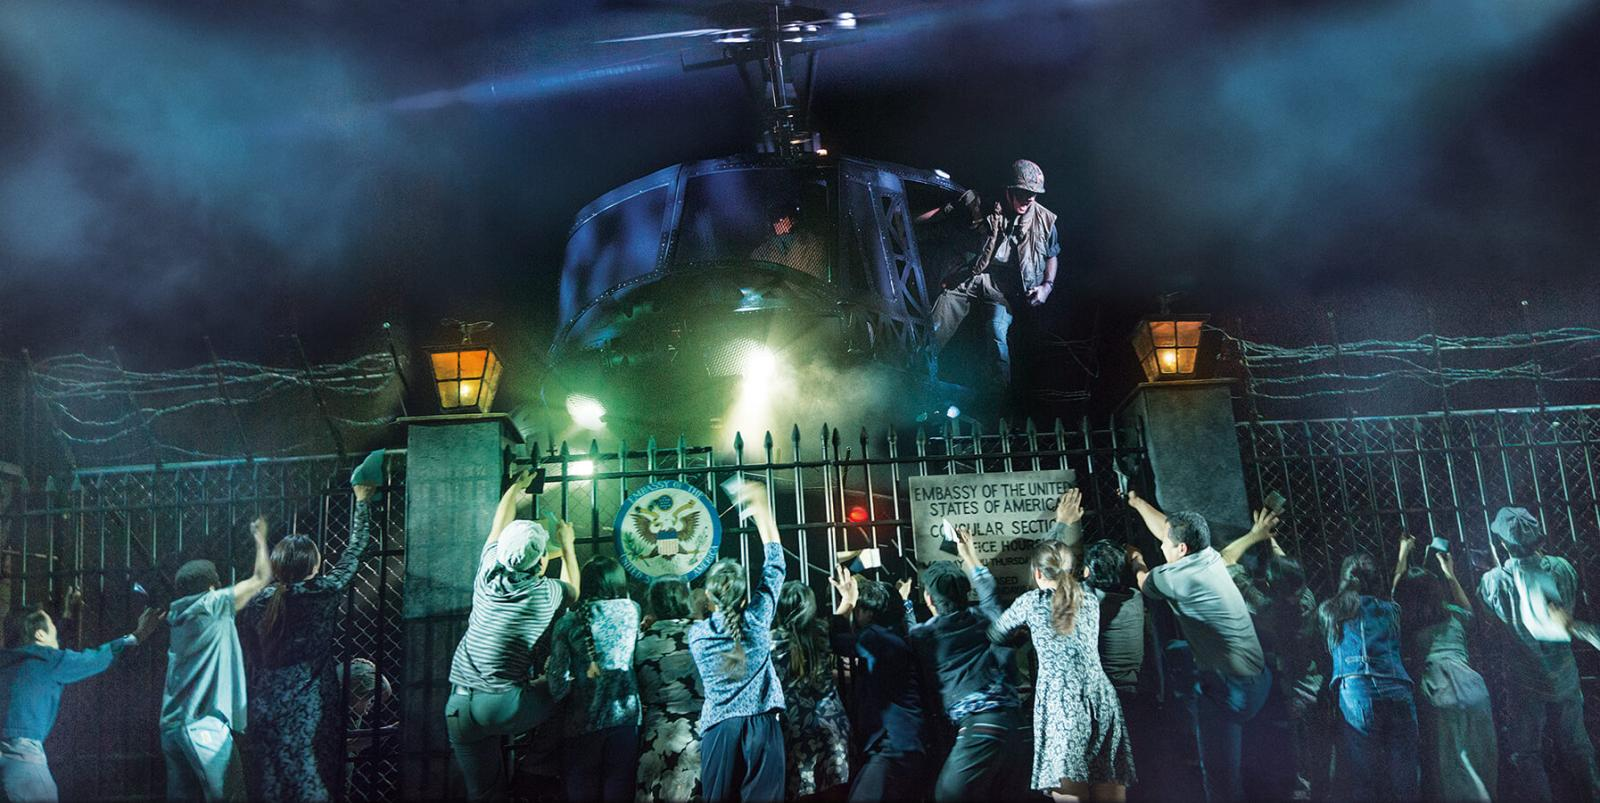 Miss Saigon - UK Tour Review - At The Theatre